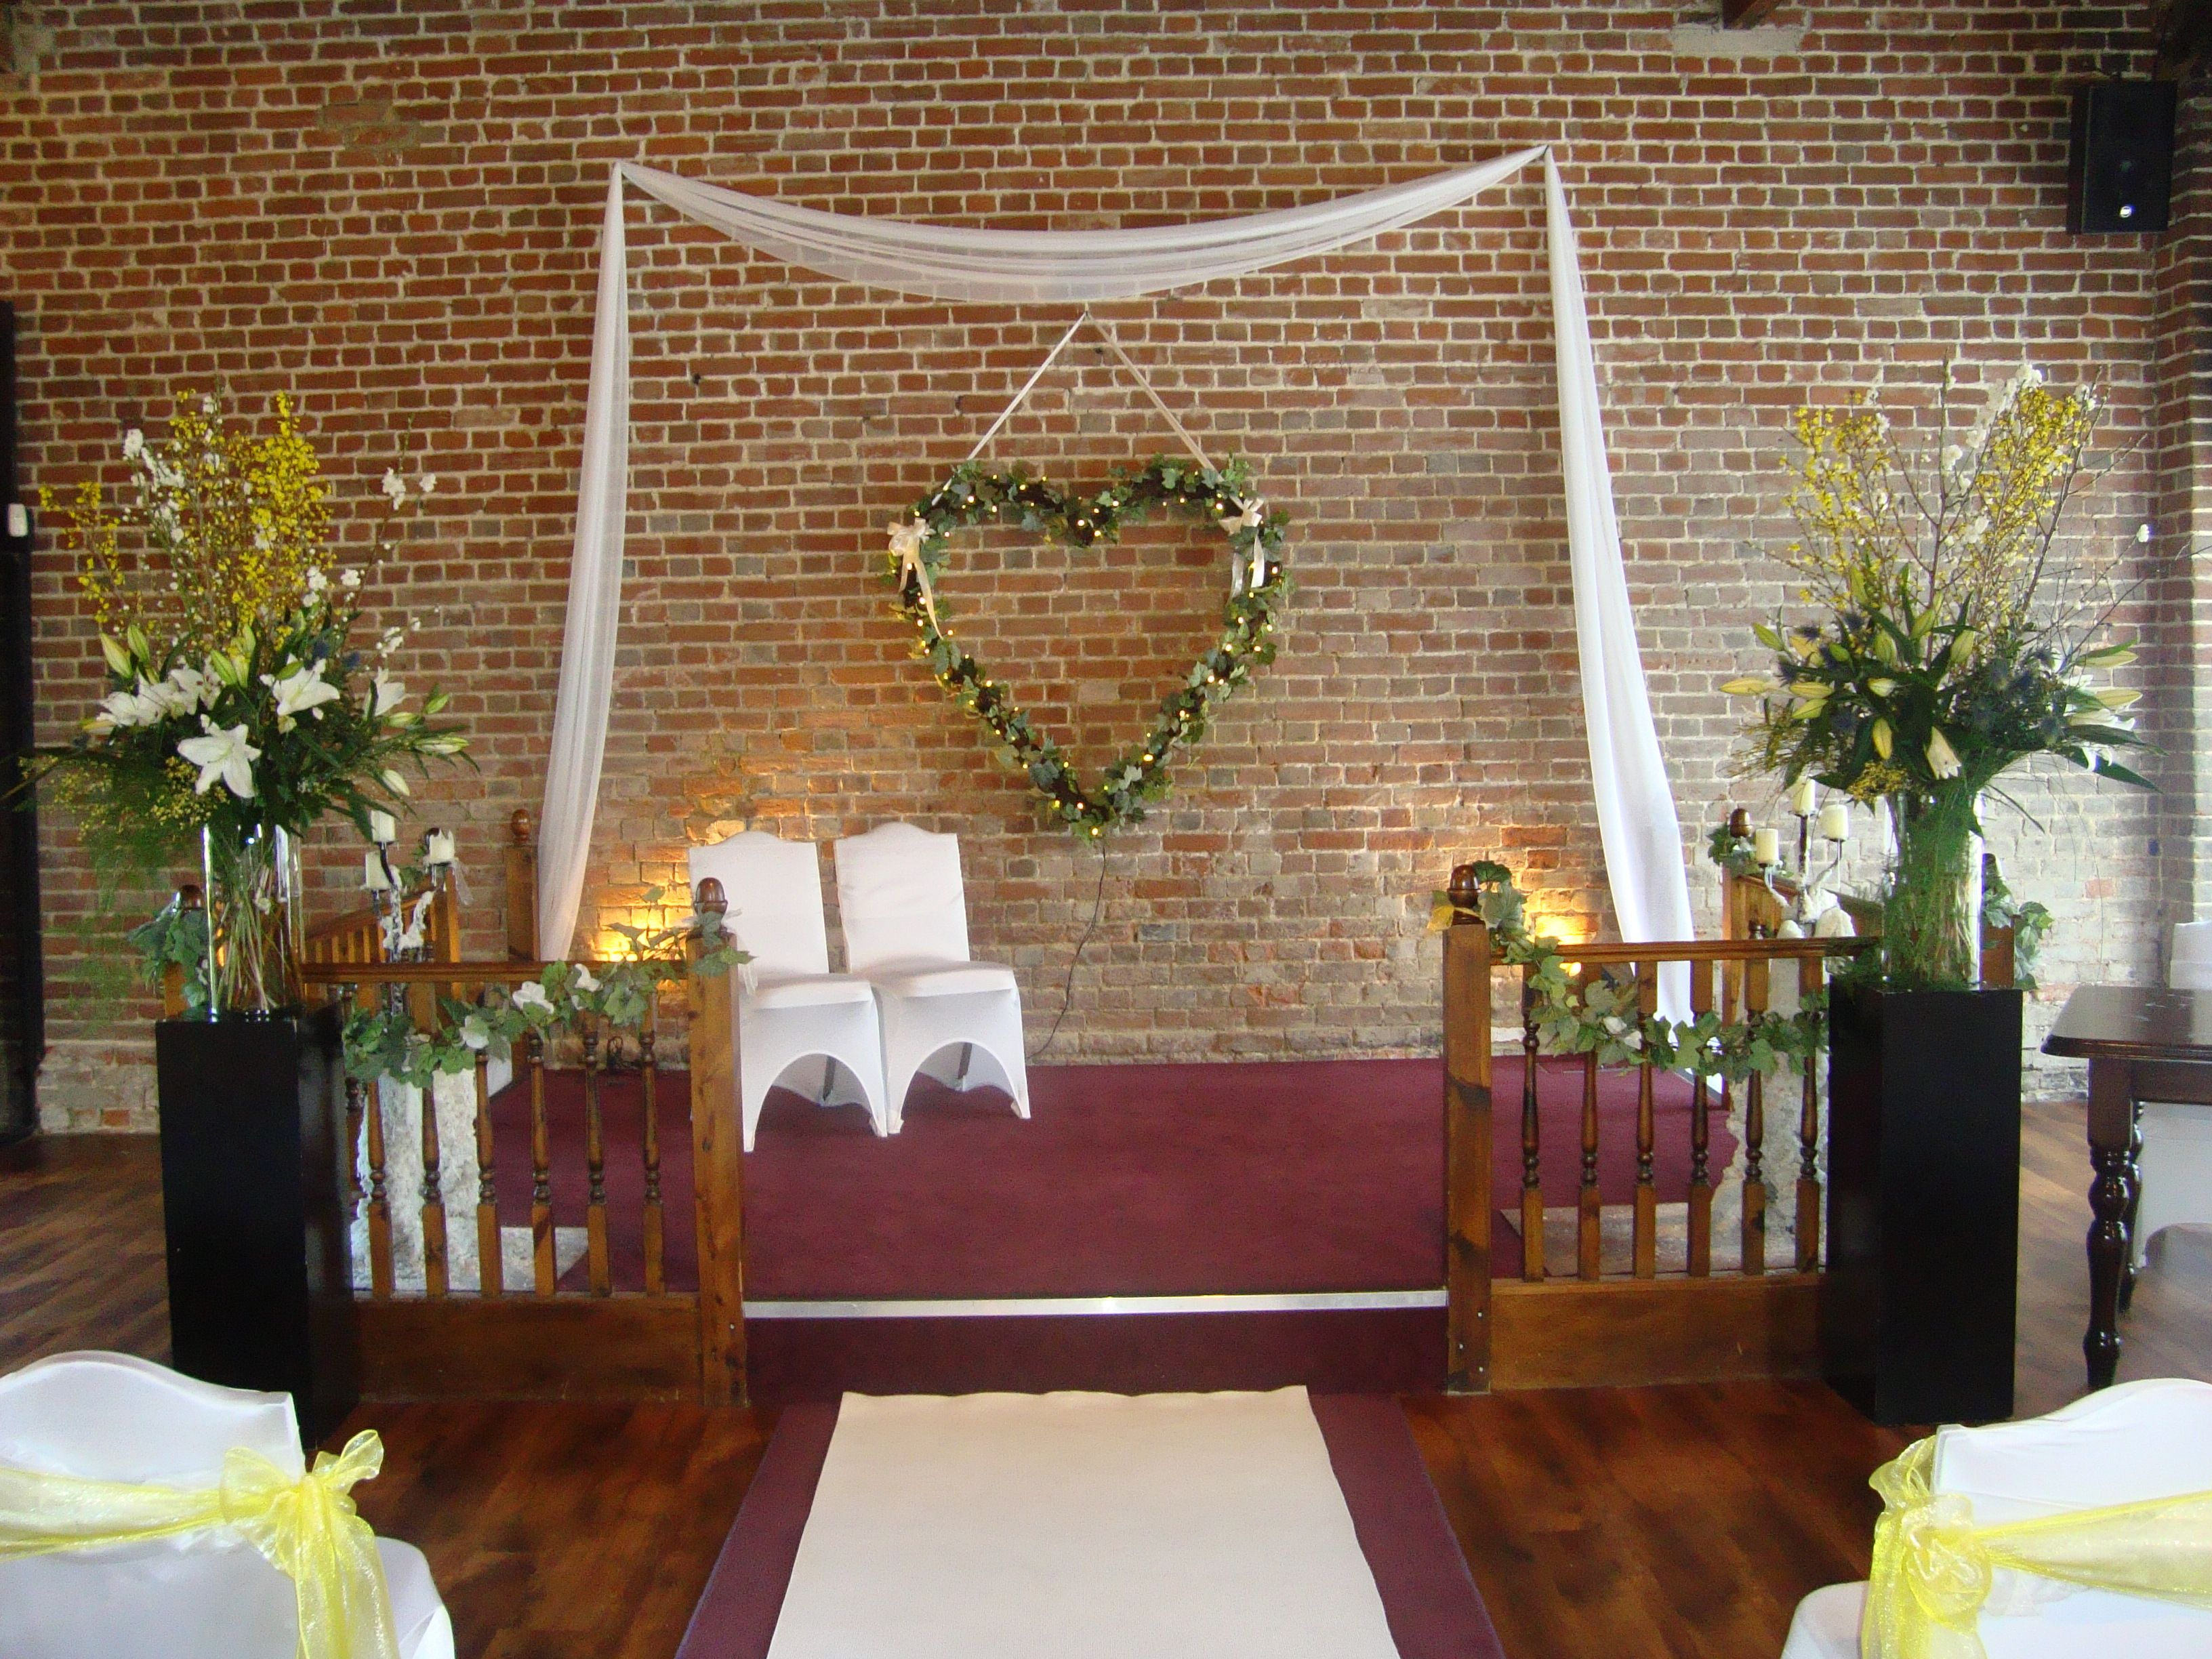 Dais in the fathom barn wedding venue in kent barn pictures dais in the fathom barn wedding venue in kent junglespirit Images